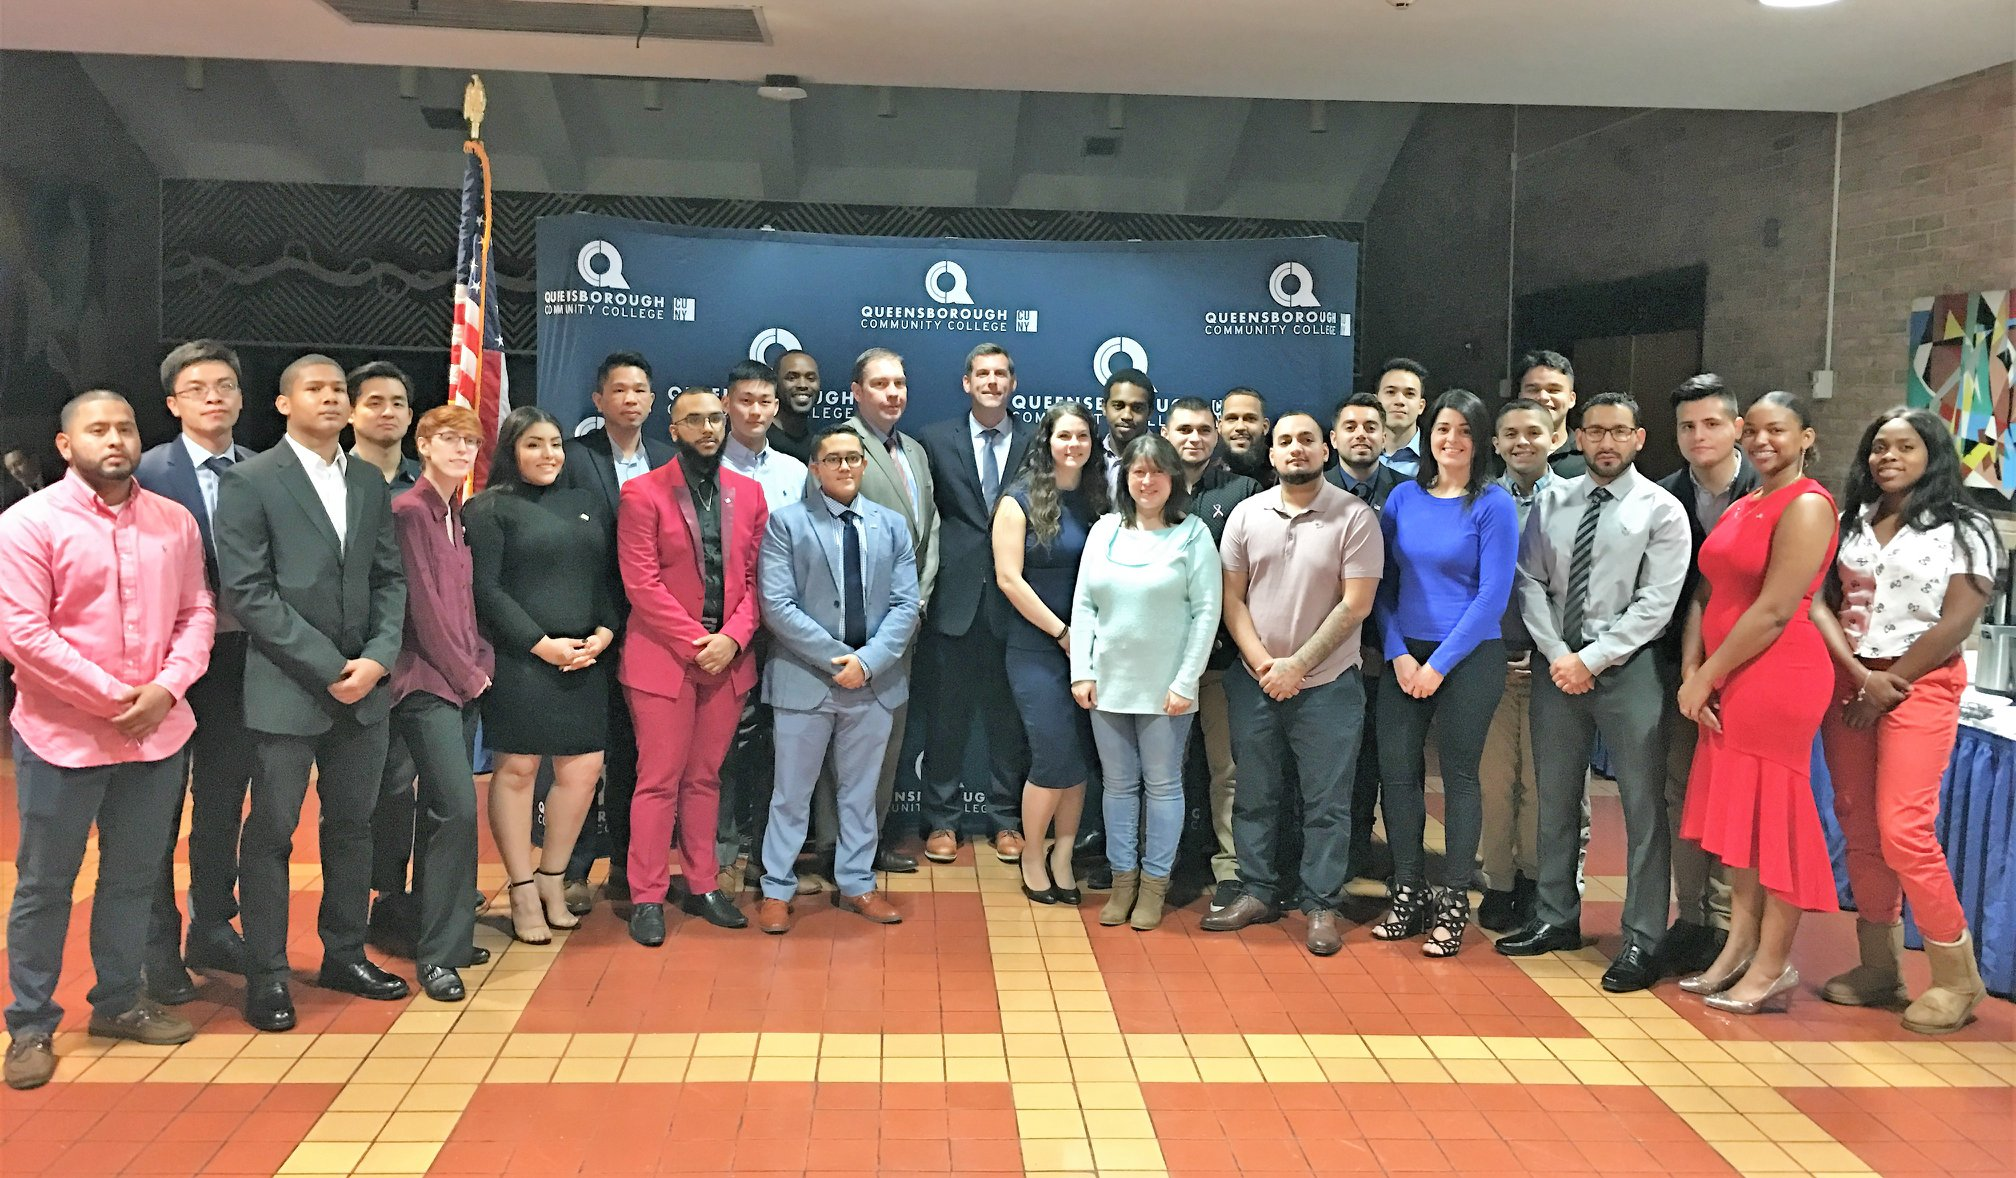 On November 8, 2018, Assemblyman Braunstein attended Queensborough Community College's Annual Veterans Dinner.